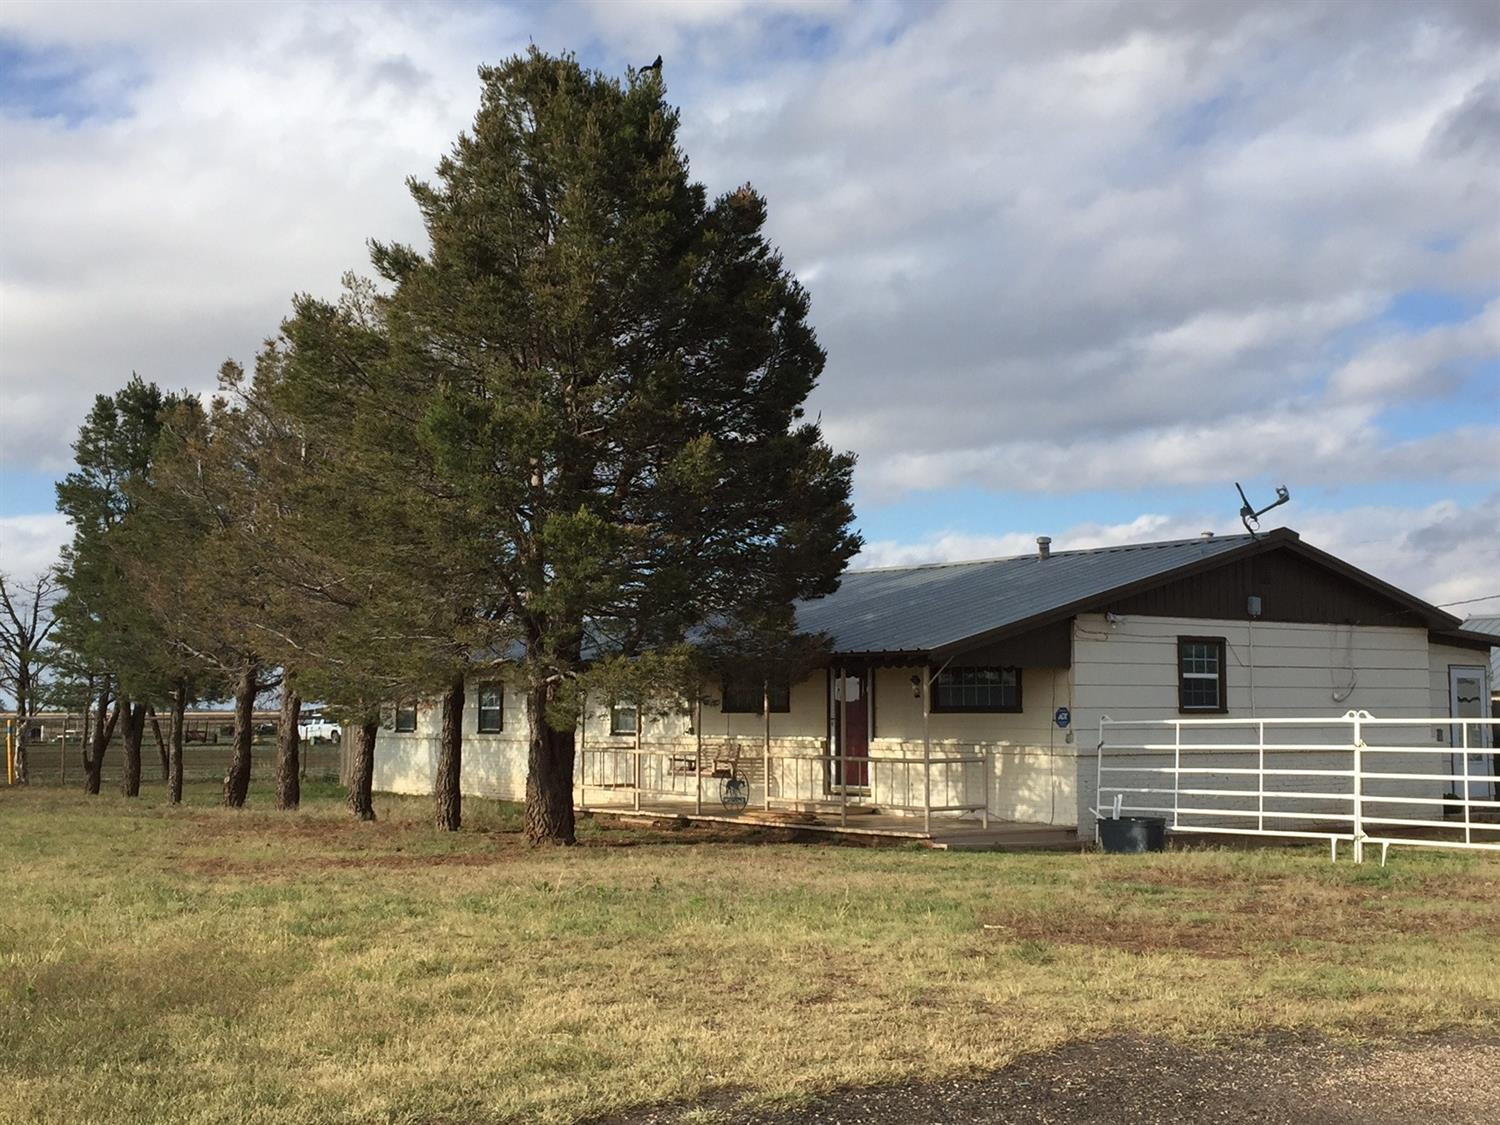 PRIME Horse Property N. Lubb between Shallowater & New D--Lighted 200'x250' Roping Arena--10 stall barn w/ feed/hay room, 5 saddle tack room, pipe fencing, approx 7 acres of pasture, 2 producing water wells, deep sandy arena w/ cattle holding pens at both ends, 15'x20' loafing shed, return alley, 30x60' Metal Barn w/ 30x60' overhang for trailers, hay & equipment, 14'x20' Morgan Bldg, Electrical power & water to barns/buildings on separate meter from house. Frostproof hydrants at stalls, pens & arena. COMPLETELY REMODELED/UPDATED home--NEW submersible water pump, bladder tank & transfer pumps, high-capacity water softener system (2017), 500 gal water storage tank, 30 gal & new 40 gal gas hot water heaters, New A/C 2016, 1070 sq ft detached garage w/ Liftmaster auto door opener easily fits two trucks plus space for lawn mowers, tools etc w/ large storage area w/ built-in shelves/cabinets. Washer, dryer, refrigerator, microwave, water softener, water tank convey.